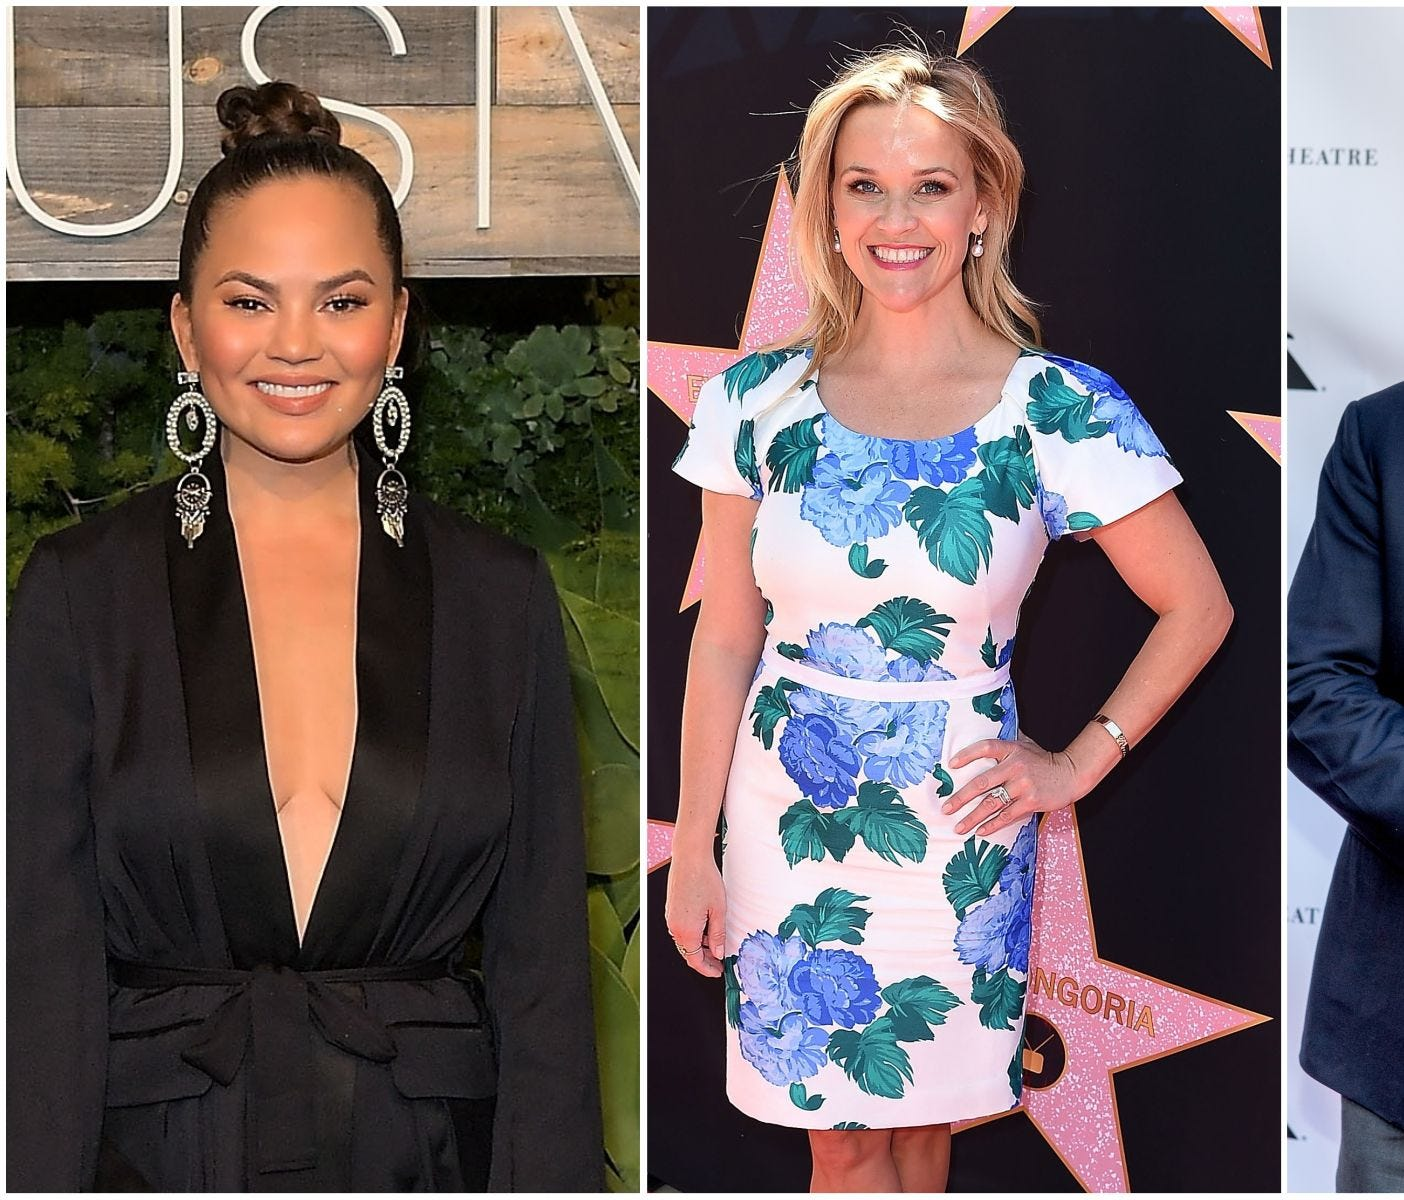 Chrissy Teigen, Reese Witherspoon, Alec Baldwin and other celebrities got political in their Fourth of July tweets.